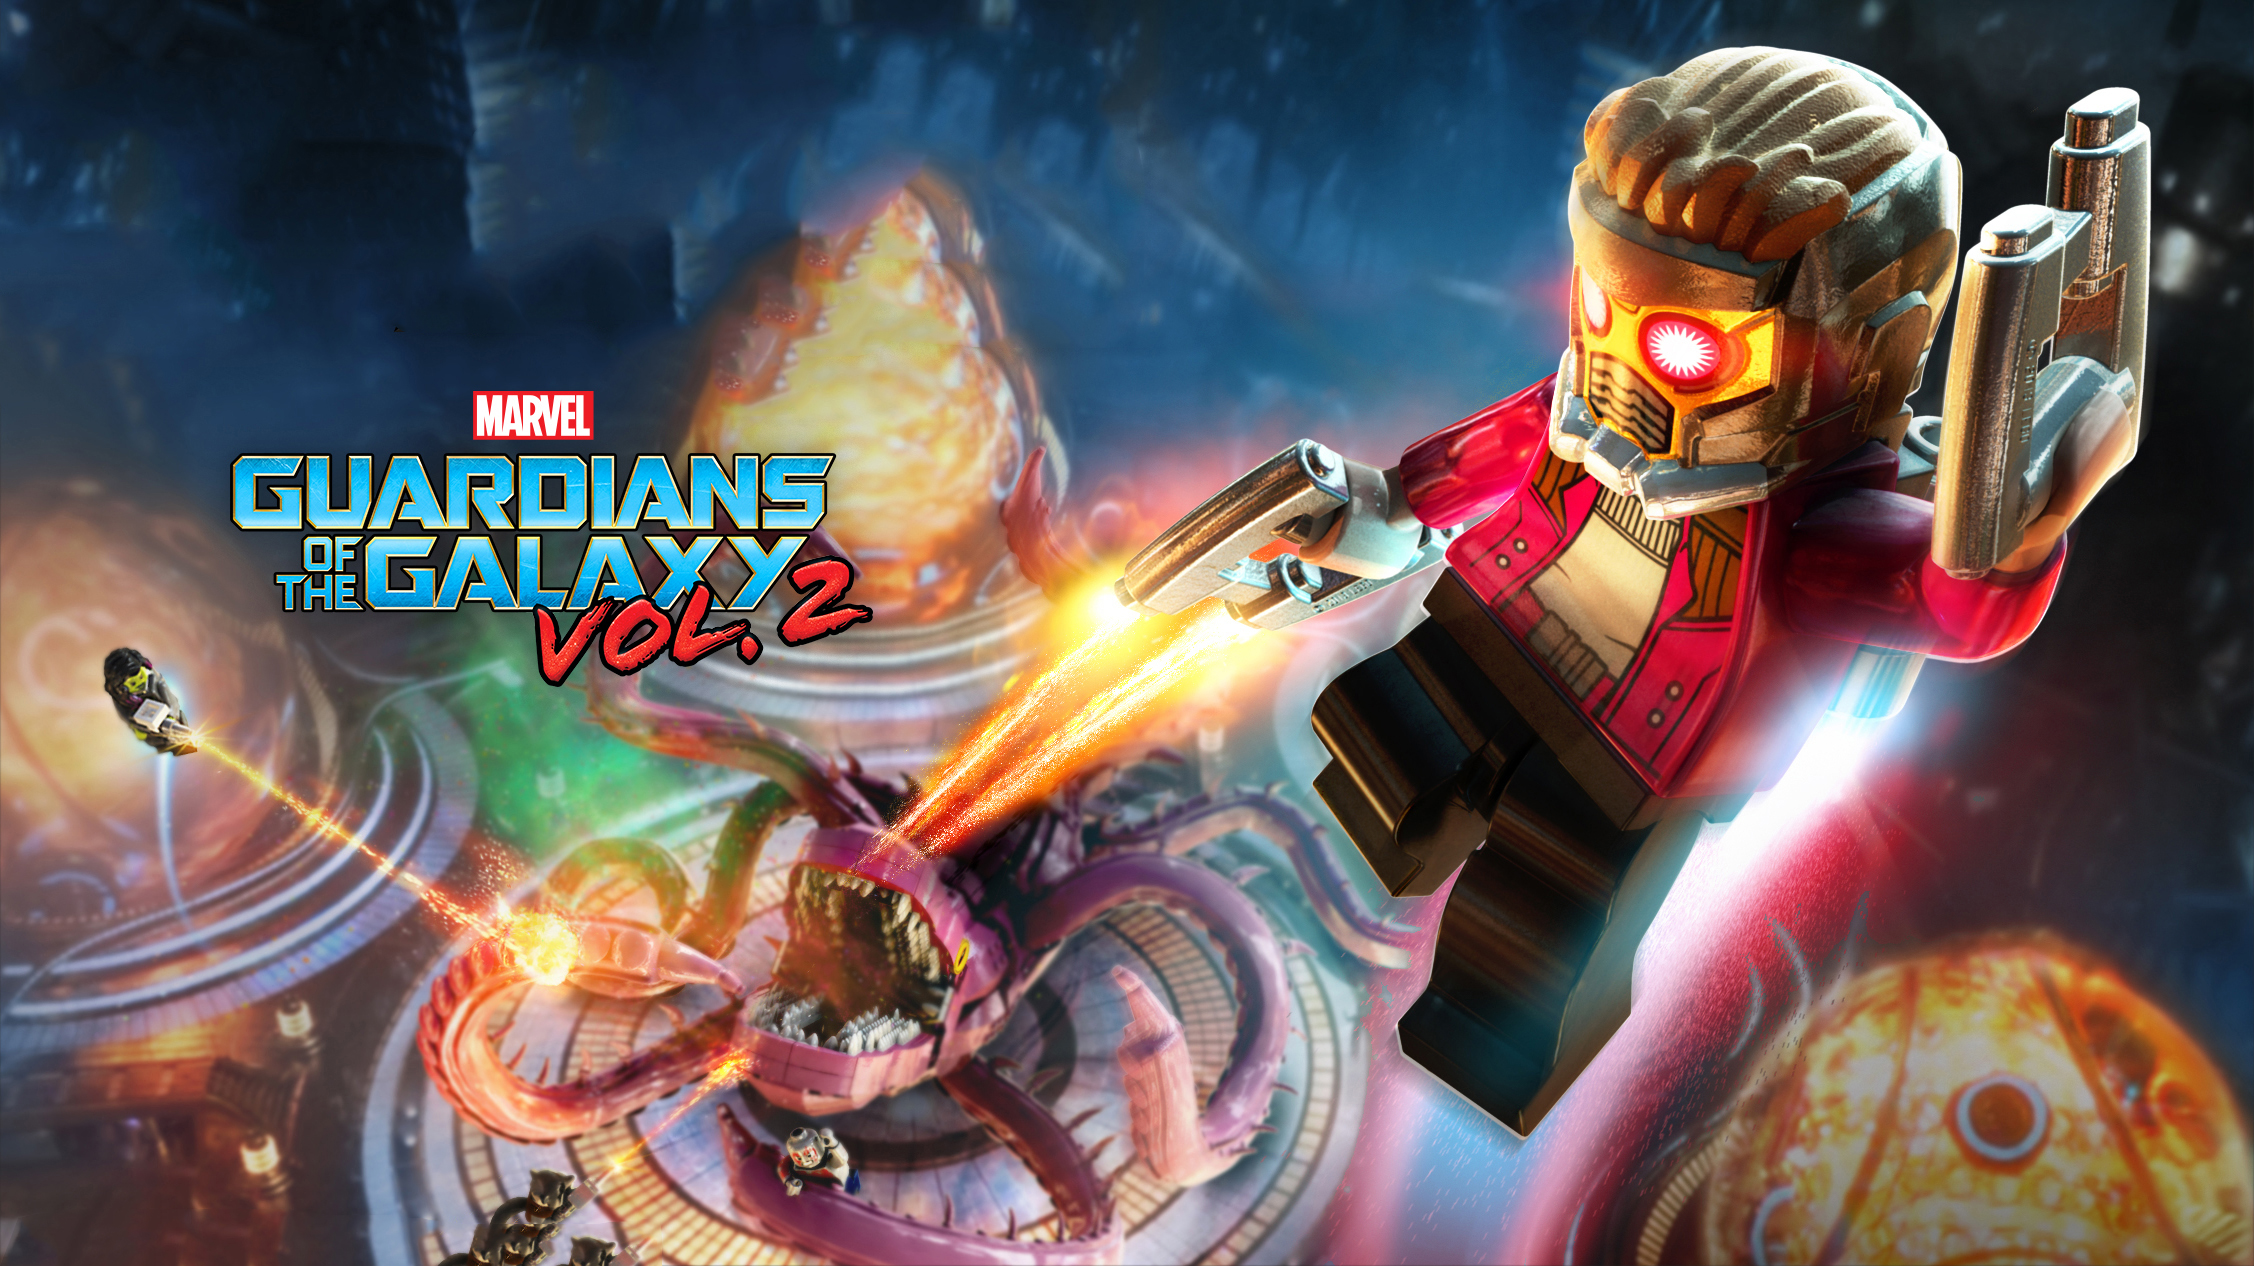 Guardians Of The Galaxy Vol 2 Lego Hd Movies 4k Wallpapers Images